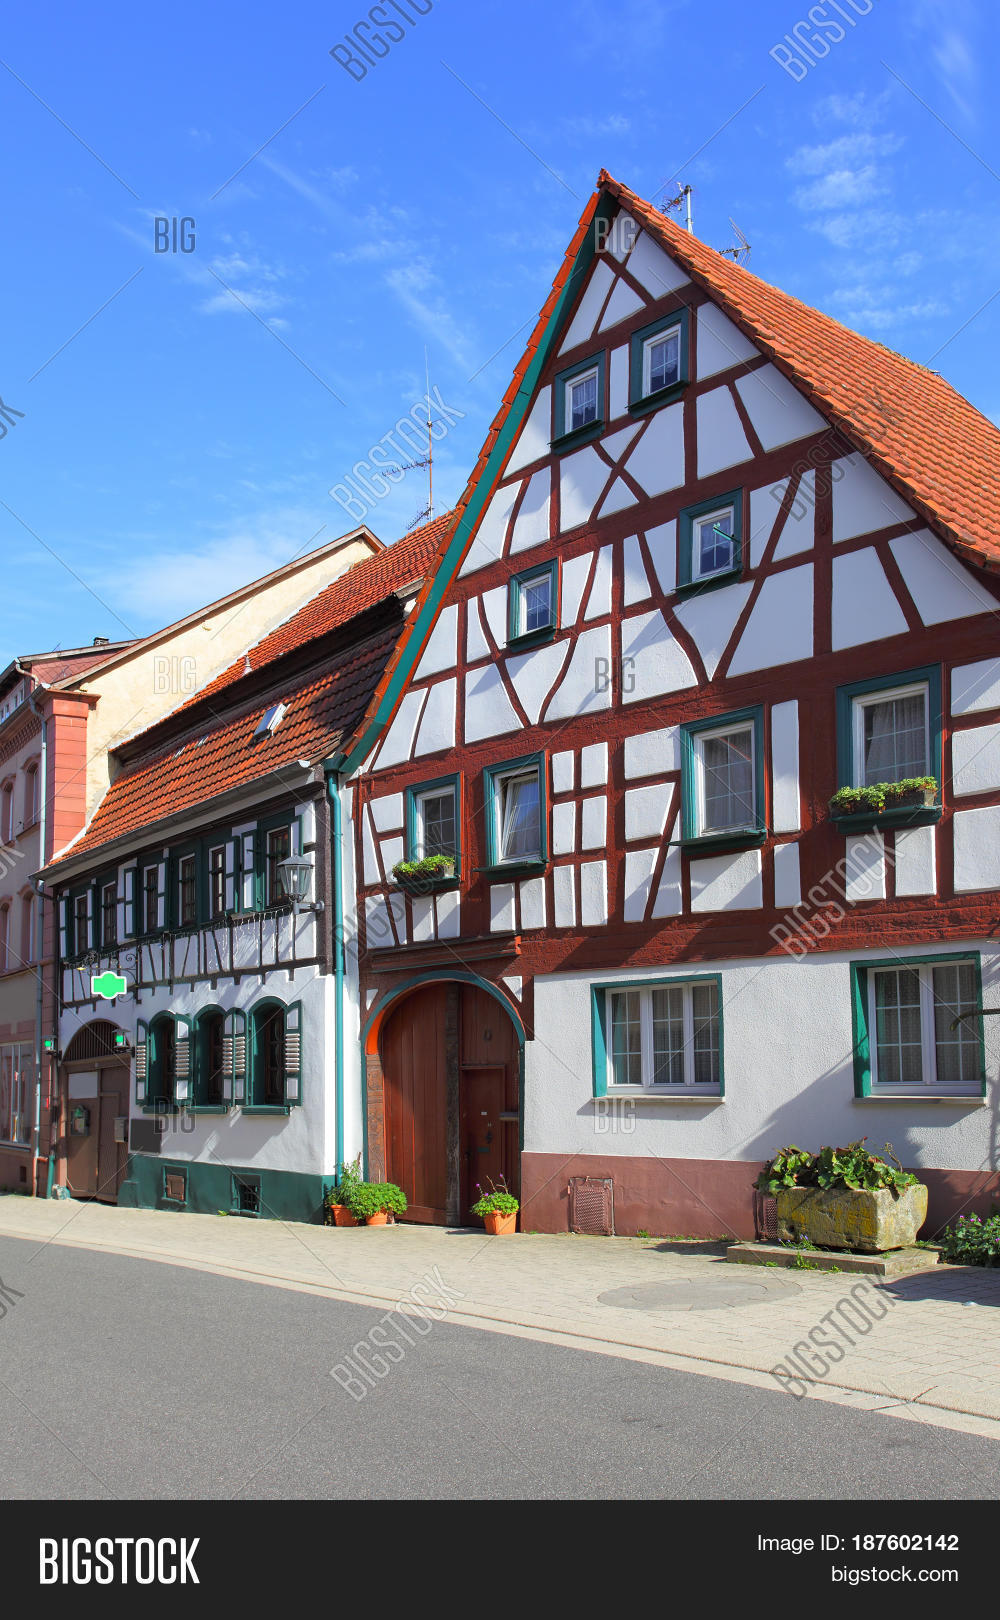 Street old houses germany image photo bigstock for Big houses in germany